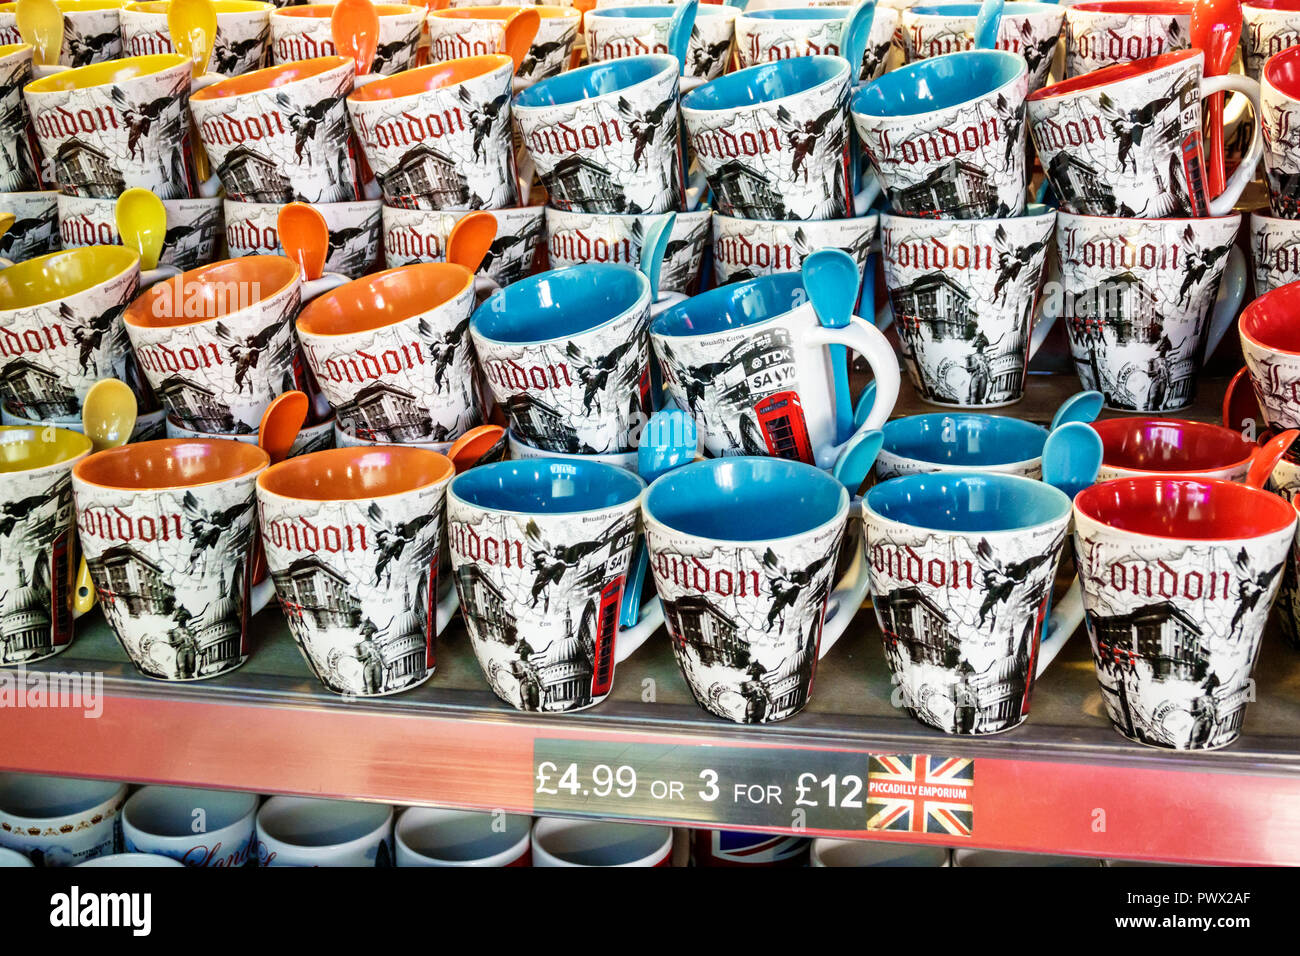 London England United Kingdom Great Britain West End Piccadilly Circus St. James's Little Britannia souvenir shop store shopping coffee tea mugs - Stock Image